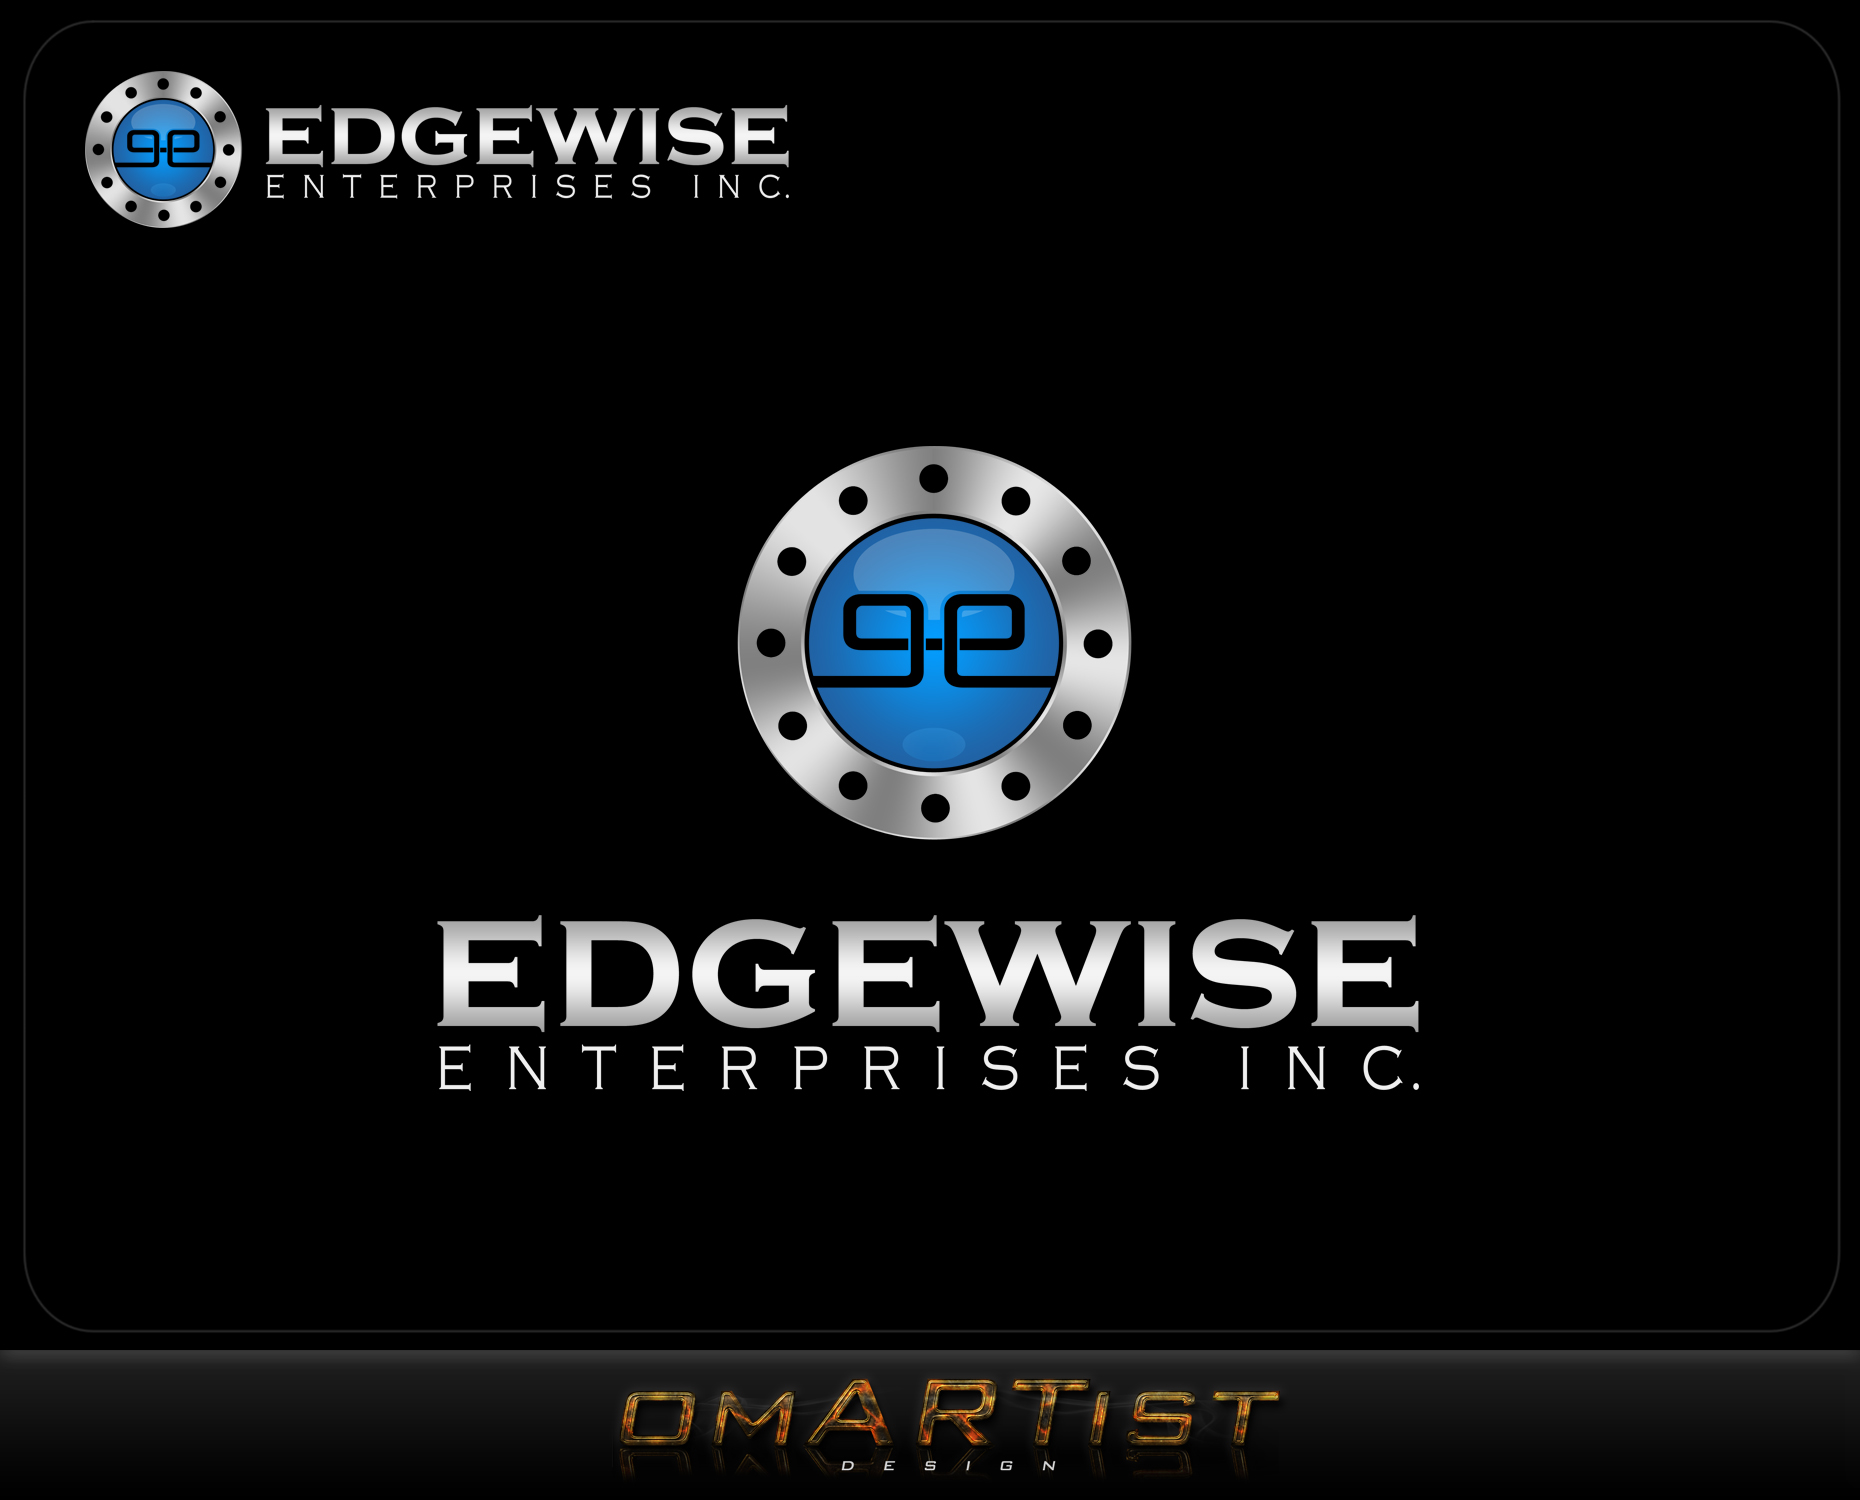 Logo Design by omARTist - Entry No. 81 in the Logo Design Contest New Logo Design for Edgewise Enterprises Inc..